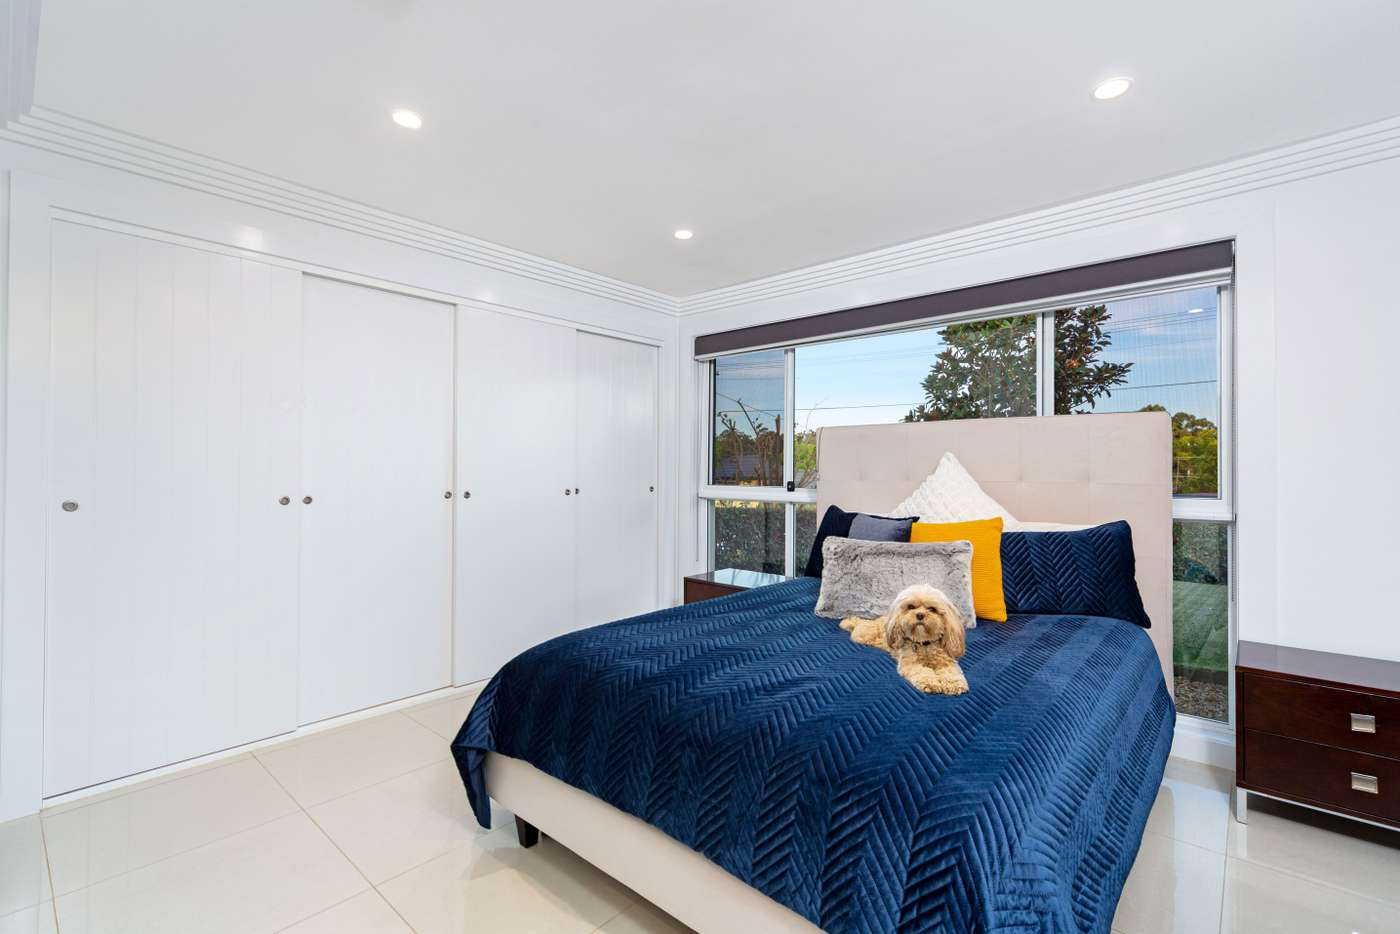 Sixth view of Homely house listing, 36 Rockley Avenue, Baulkham Hills NSW 2153